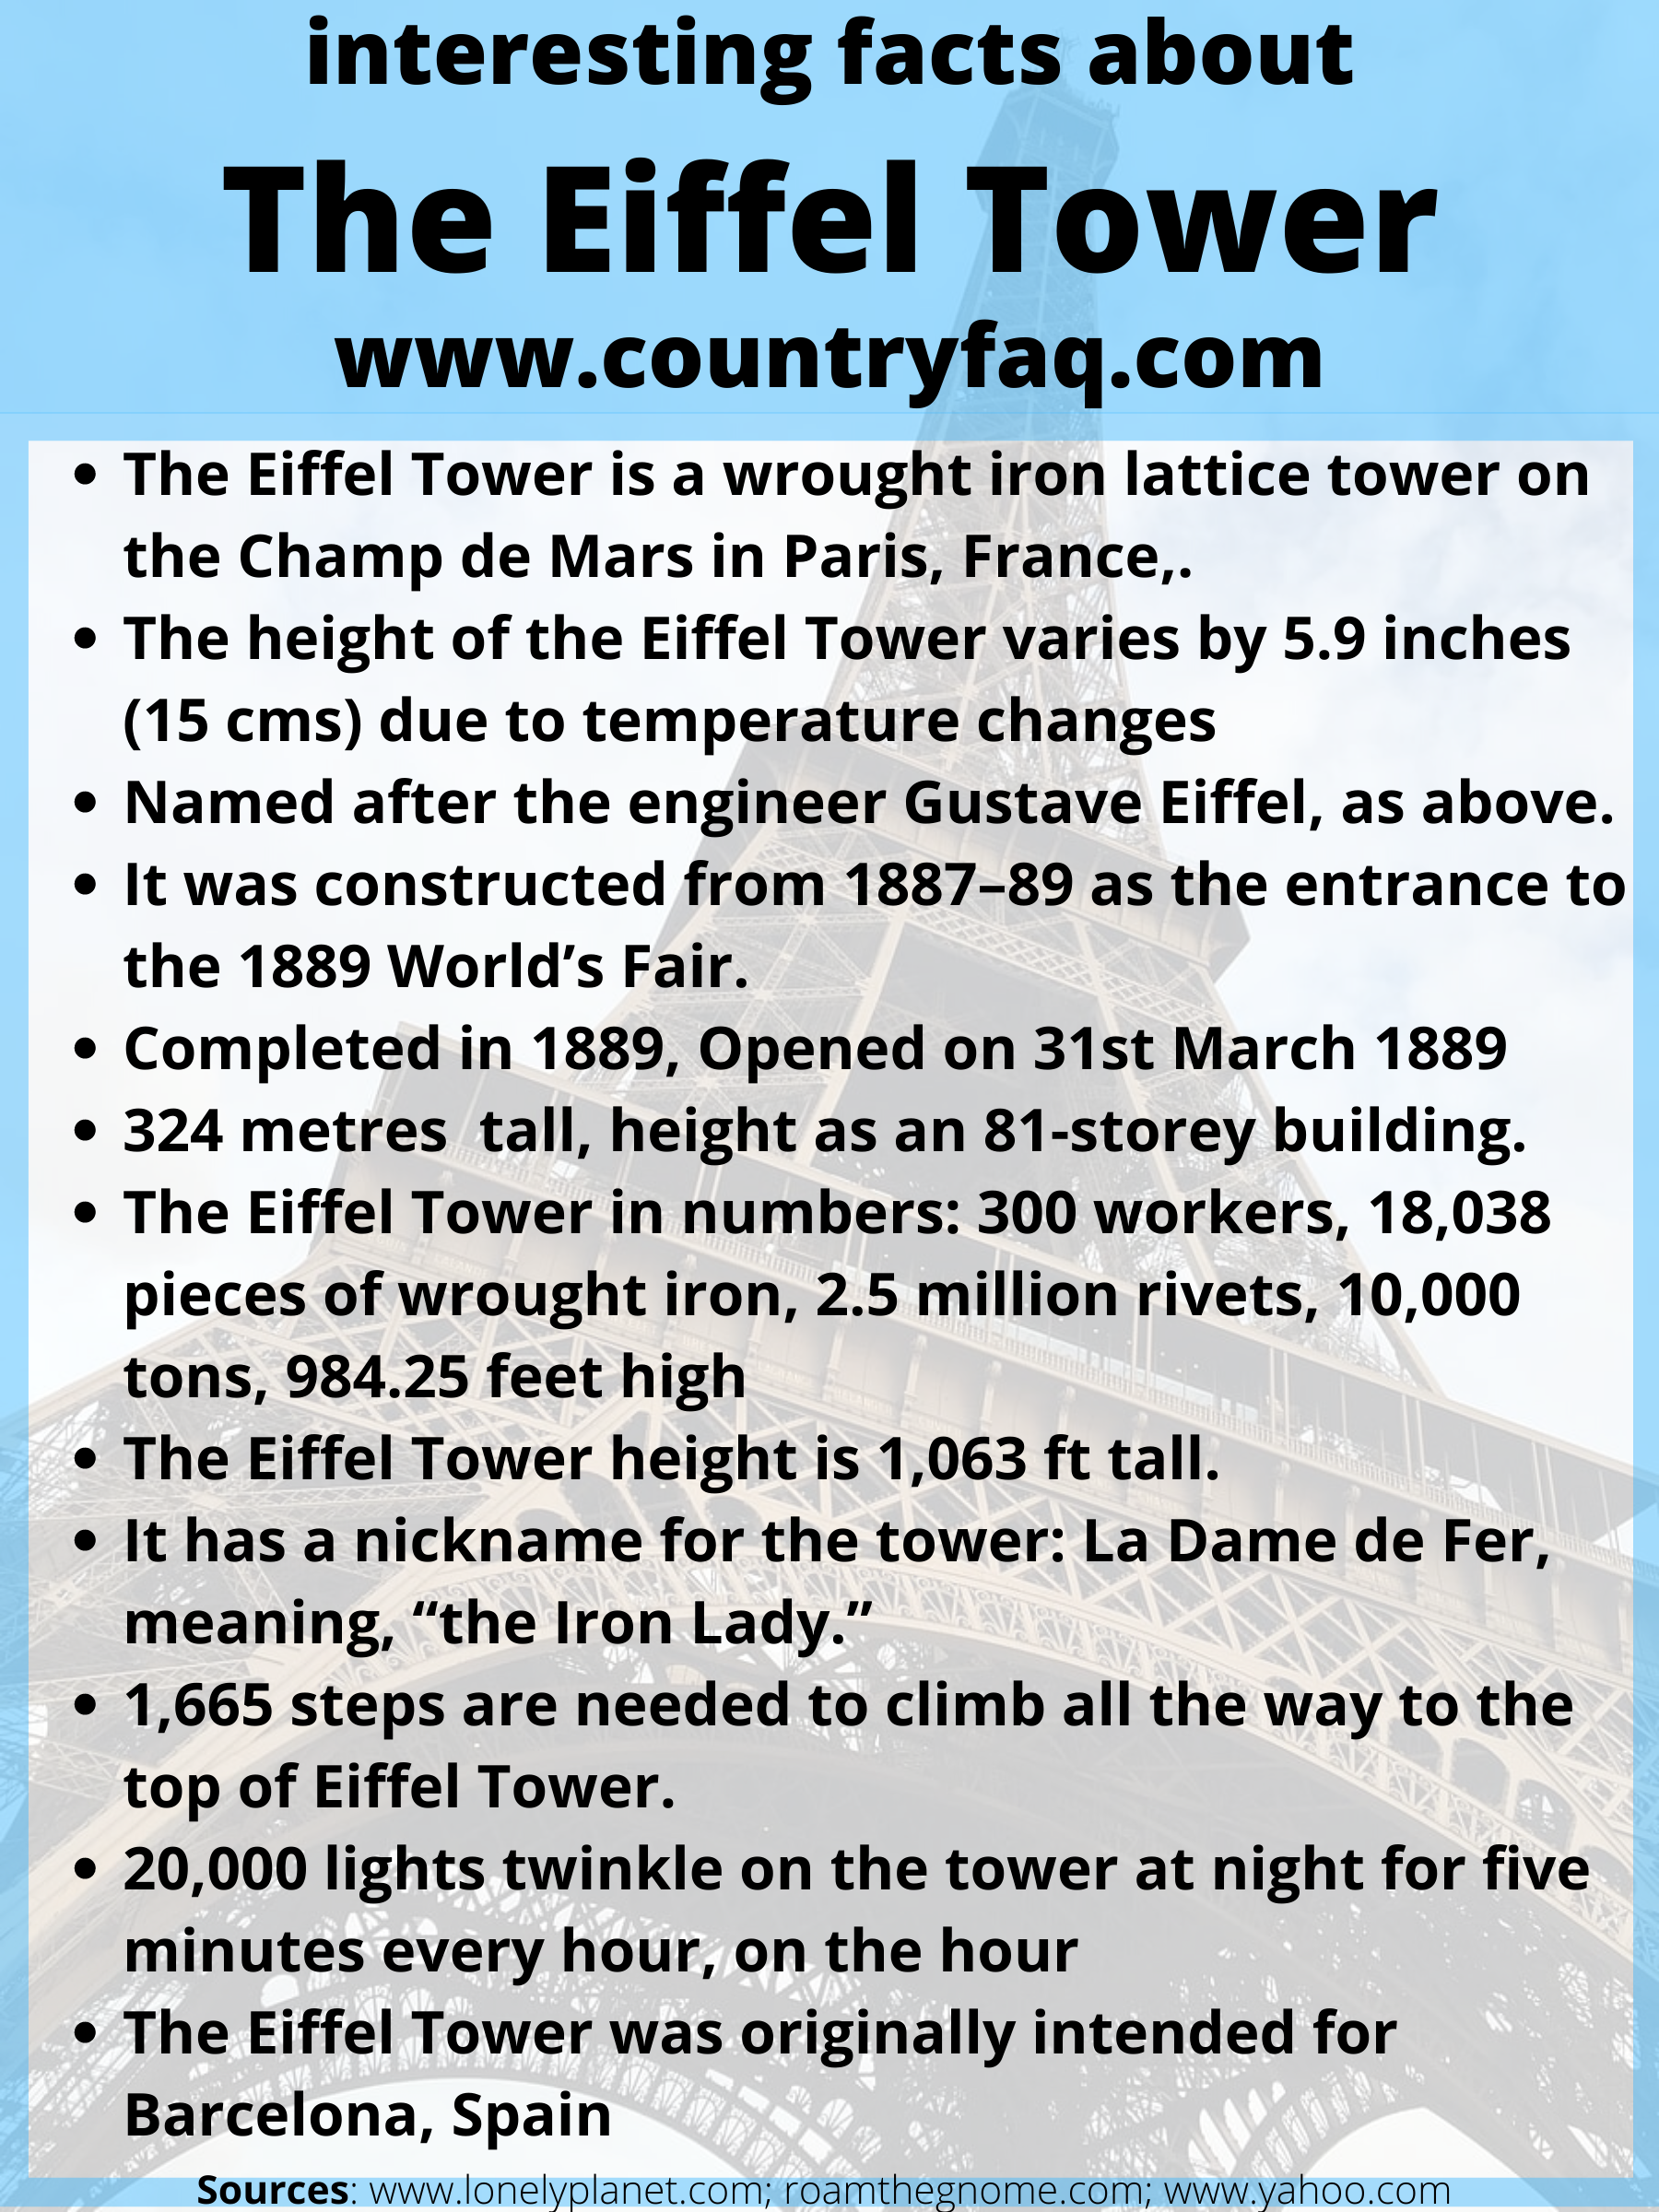 interesting facts about the eiffel tower Eiffel tower facts for kids Eiffel tower facts fun facts about the Eiffel tower Eiffel tower facts and history